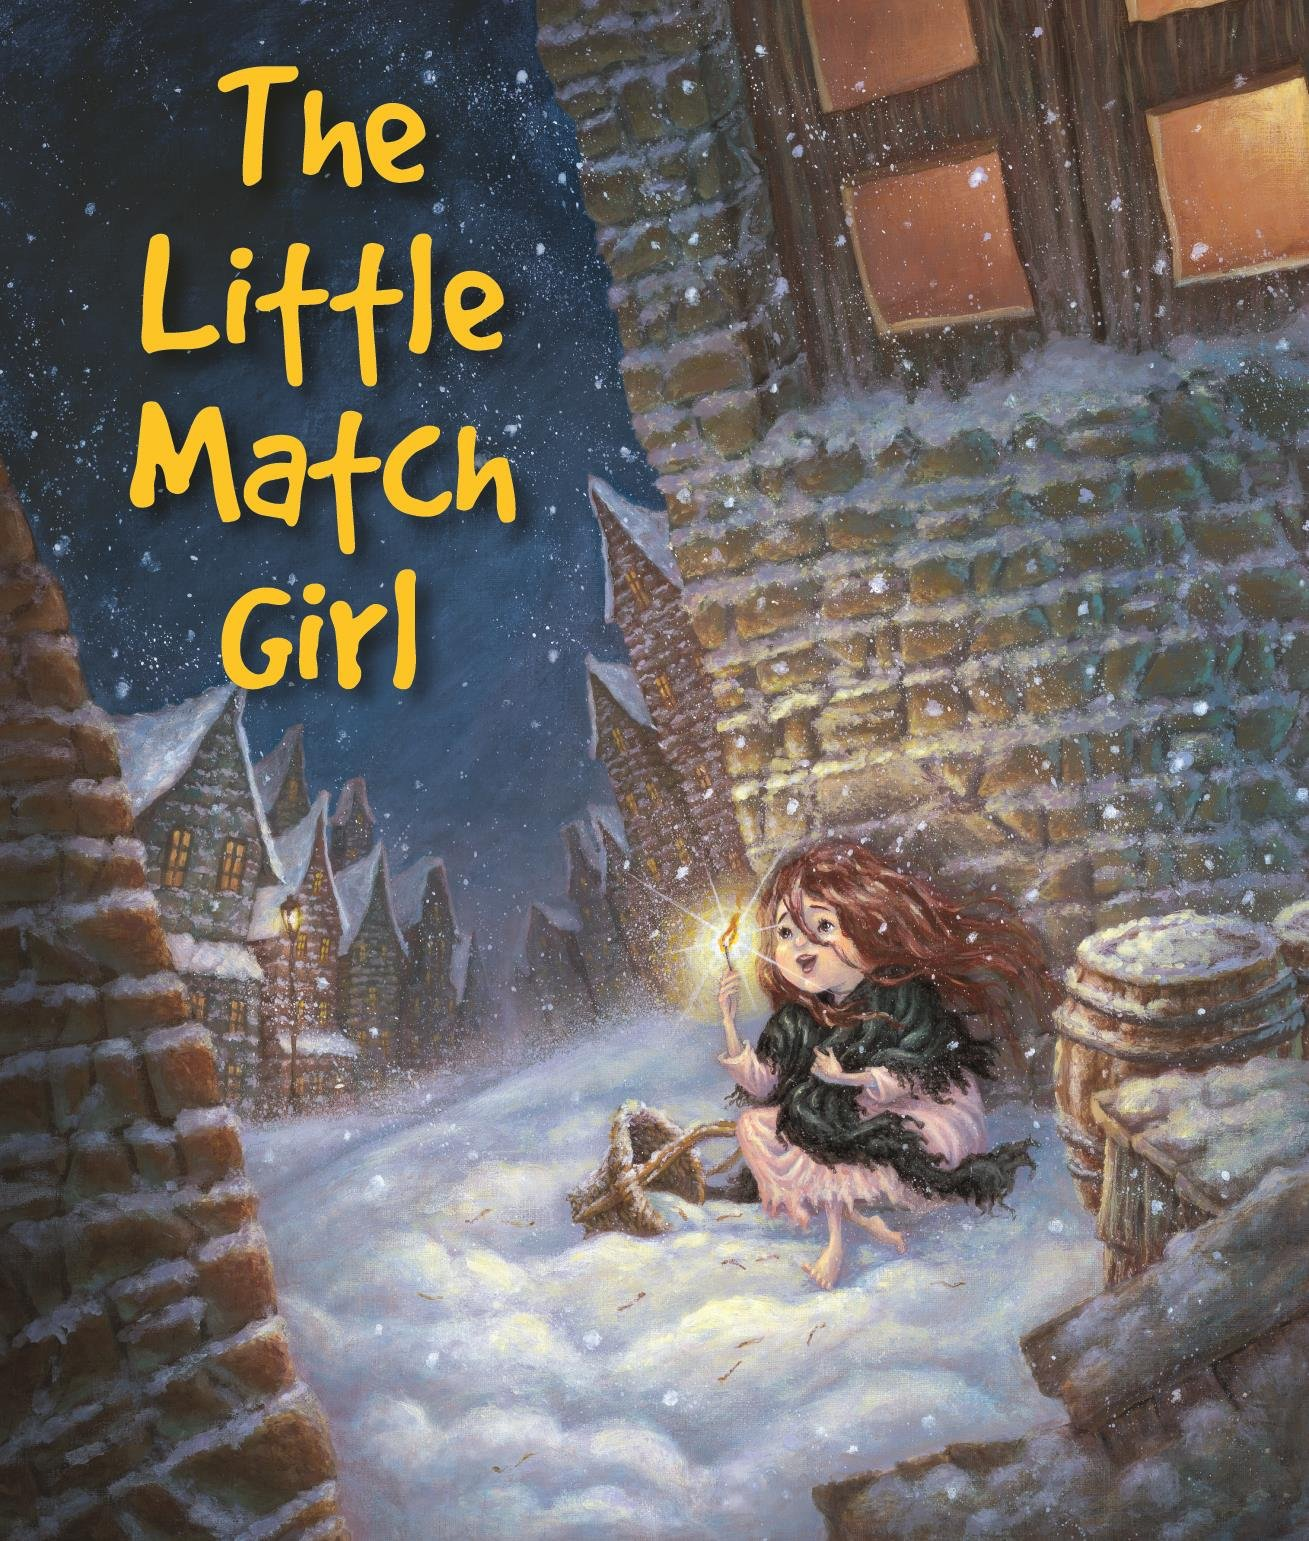 ANDERSON'S FAIRY TALES: THE LITTLE MATCH GIRL - VOL. 100 (ANDERSON FAIRY TALES)